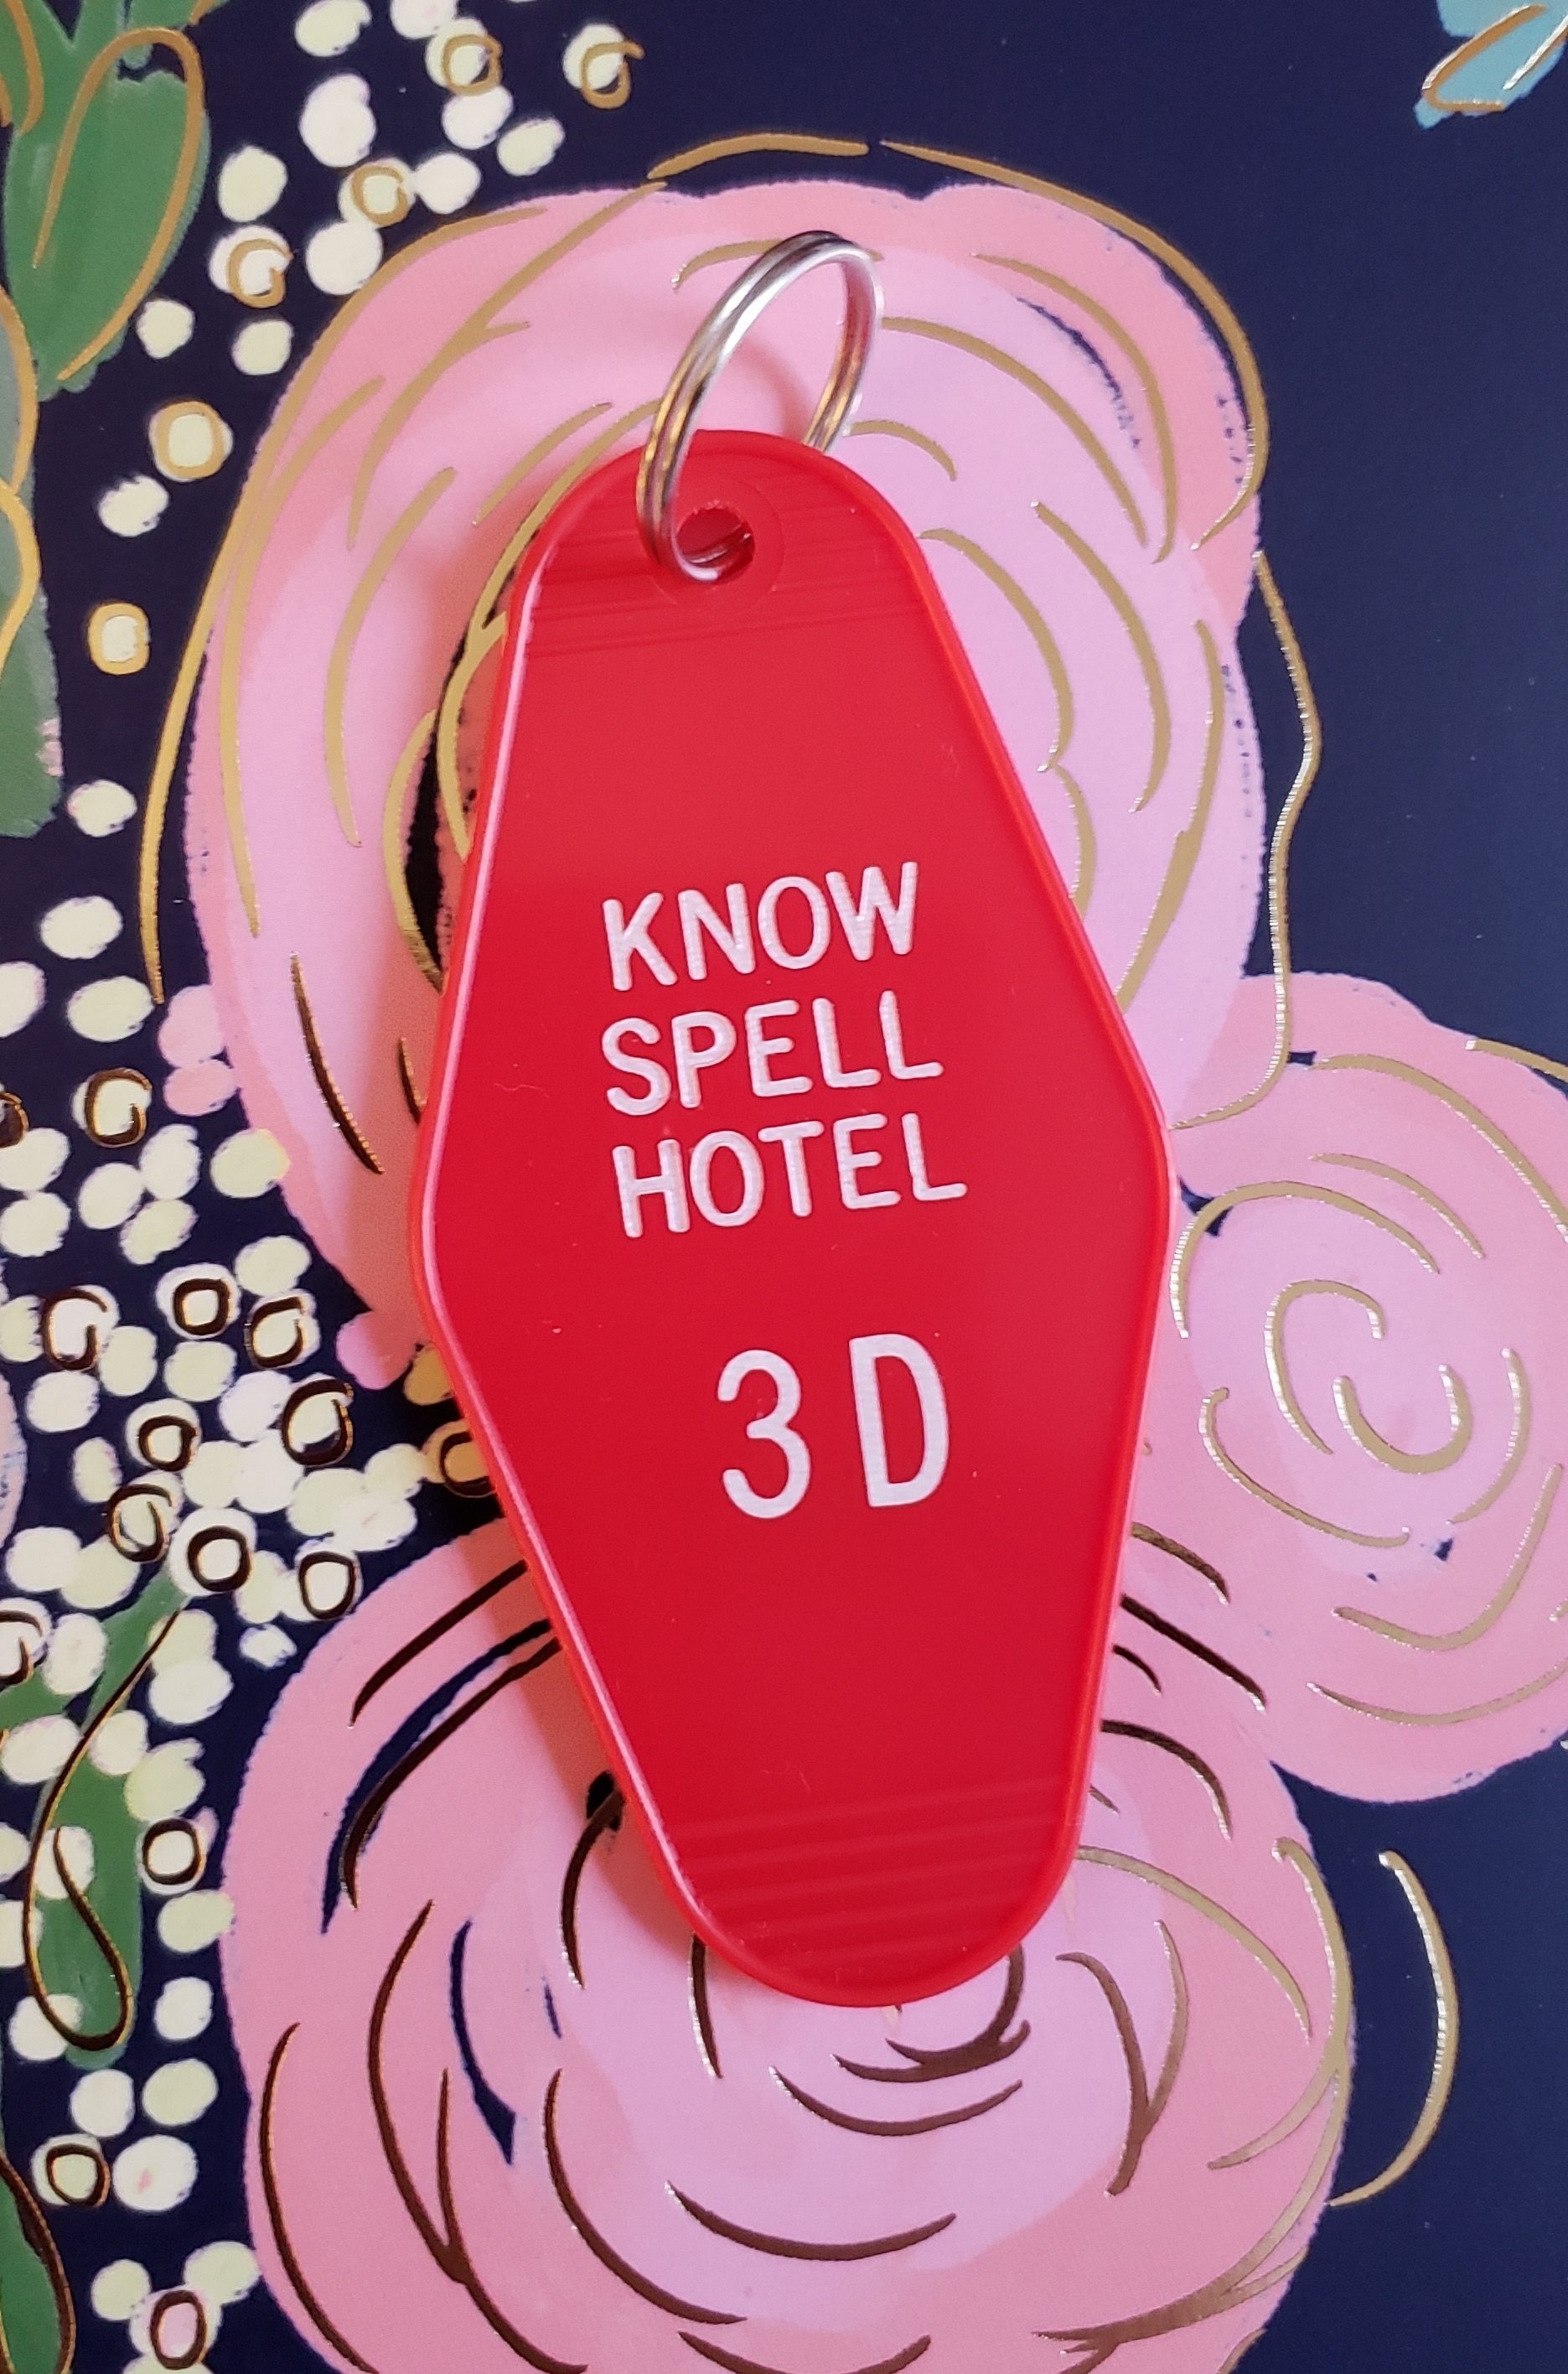 Know Spell Hotel Retro Keychain - Get checked in to the Know Spell Hotel with this retro hotel keychain! Miss Spell, Precious, and Ajax have you booked for room 3 D. Don't forget to return it to the front desk upon checkout... if you checkout... This 3 1/2